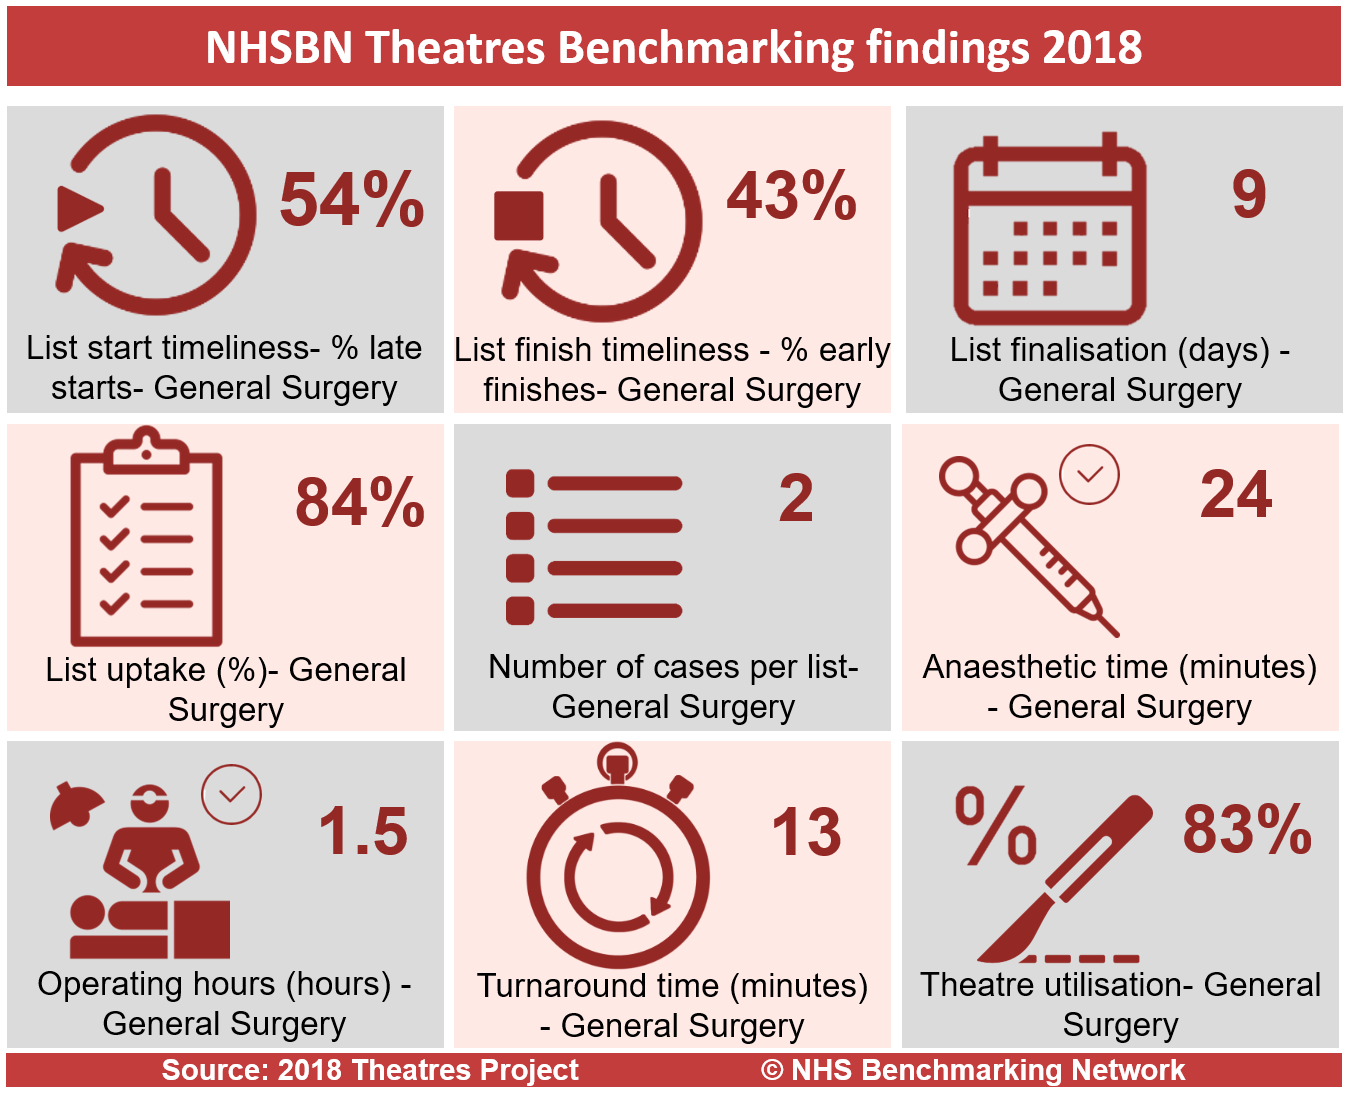 2018 NHSBN Theatres Benchmarking Infographic.png